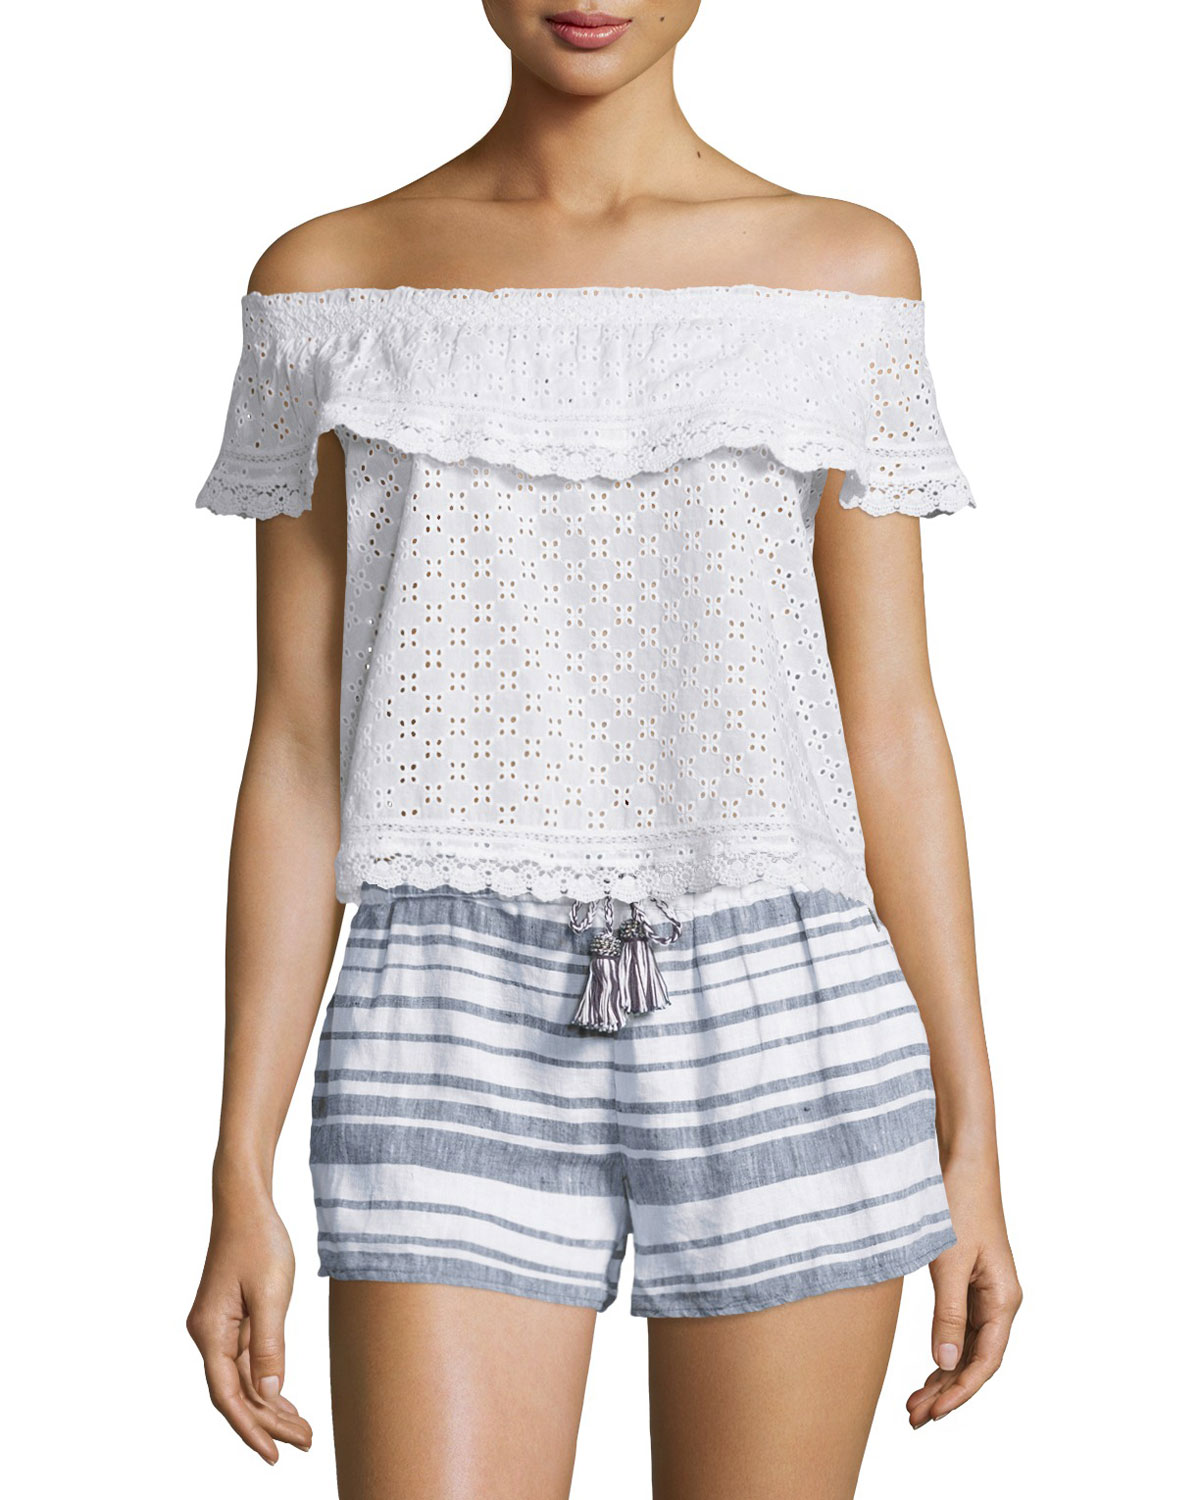 Calypso St. Barth Madel Off-The-Shoulder Eyelet Top, Coconut (White), Size: S